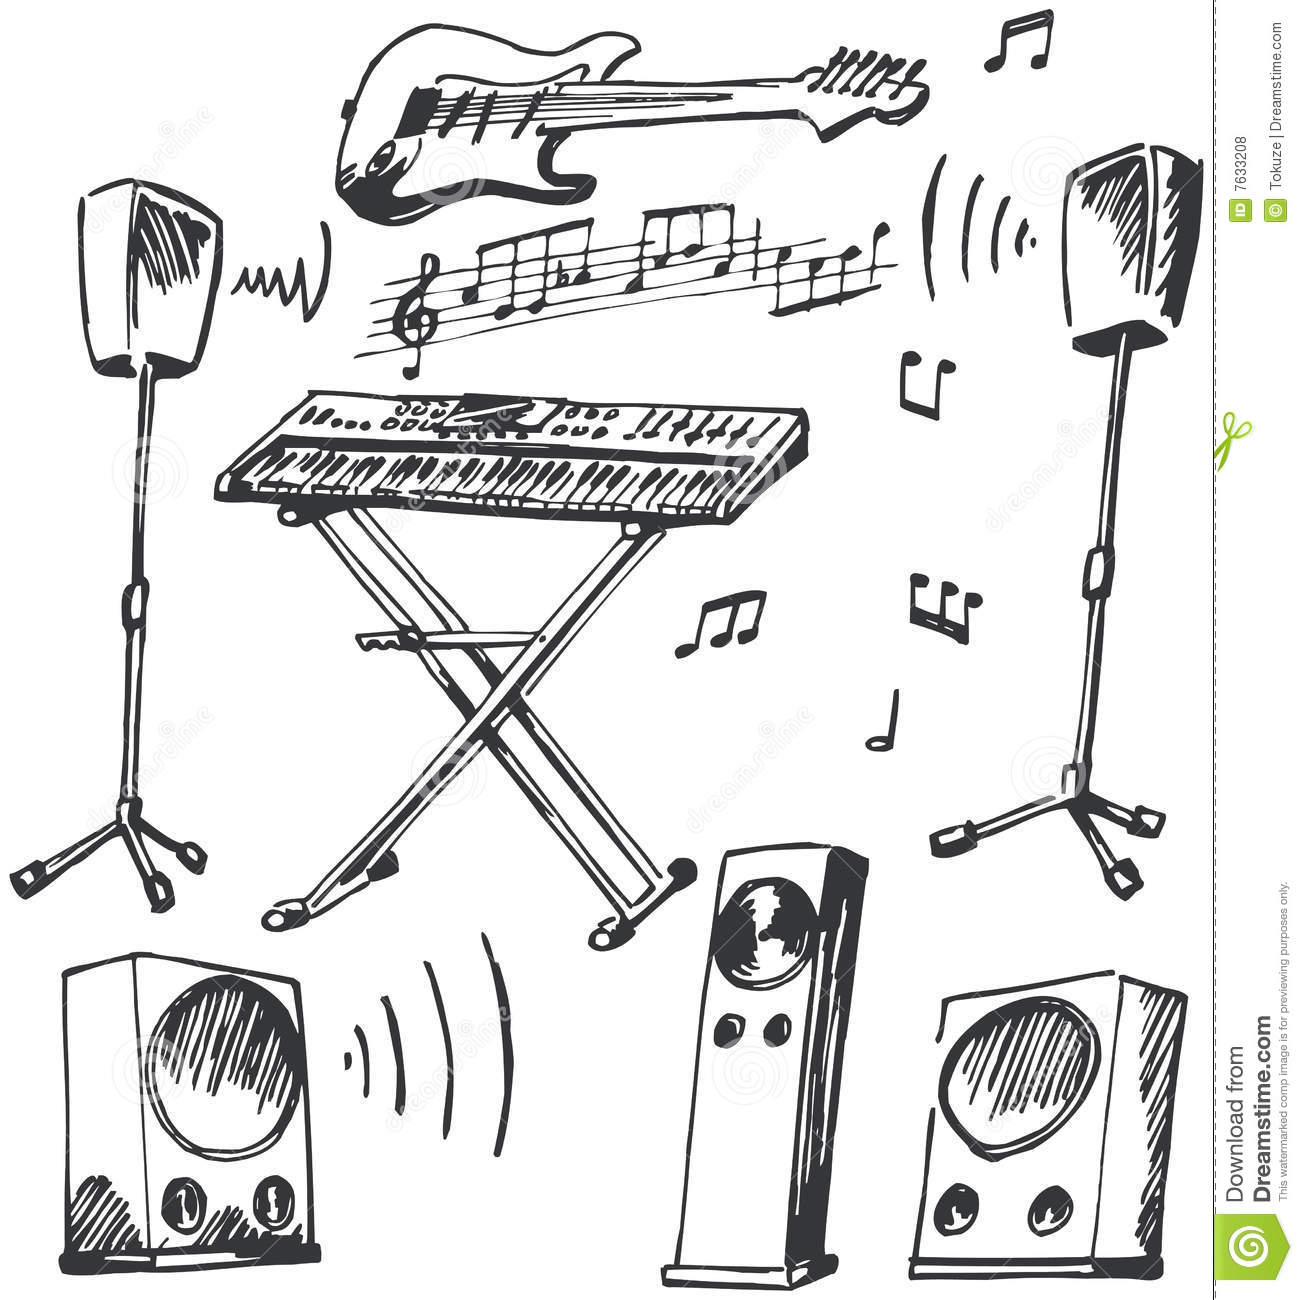 musical instruments and loudspeakers doodles royalty free